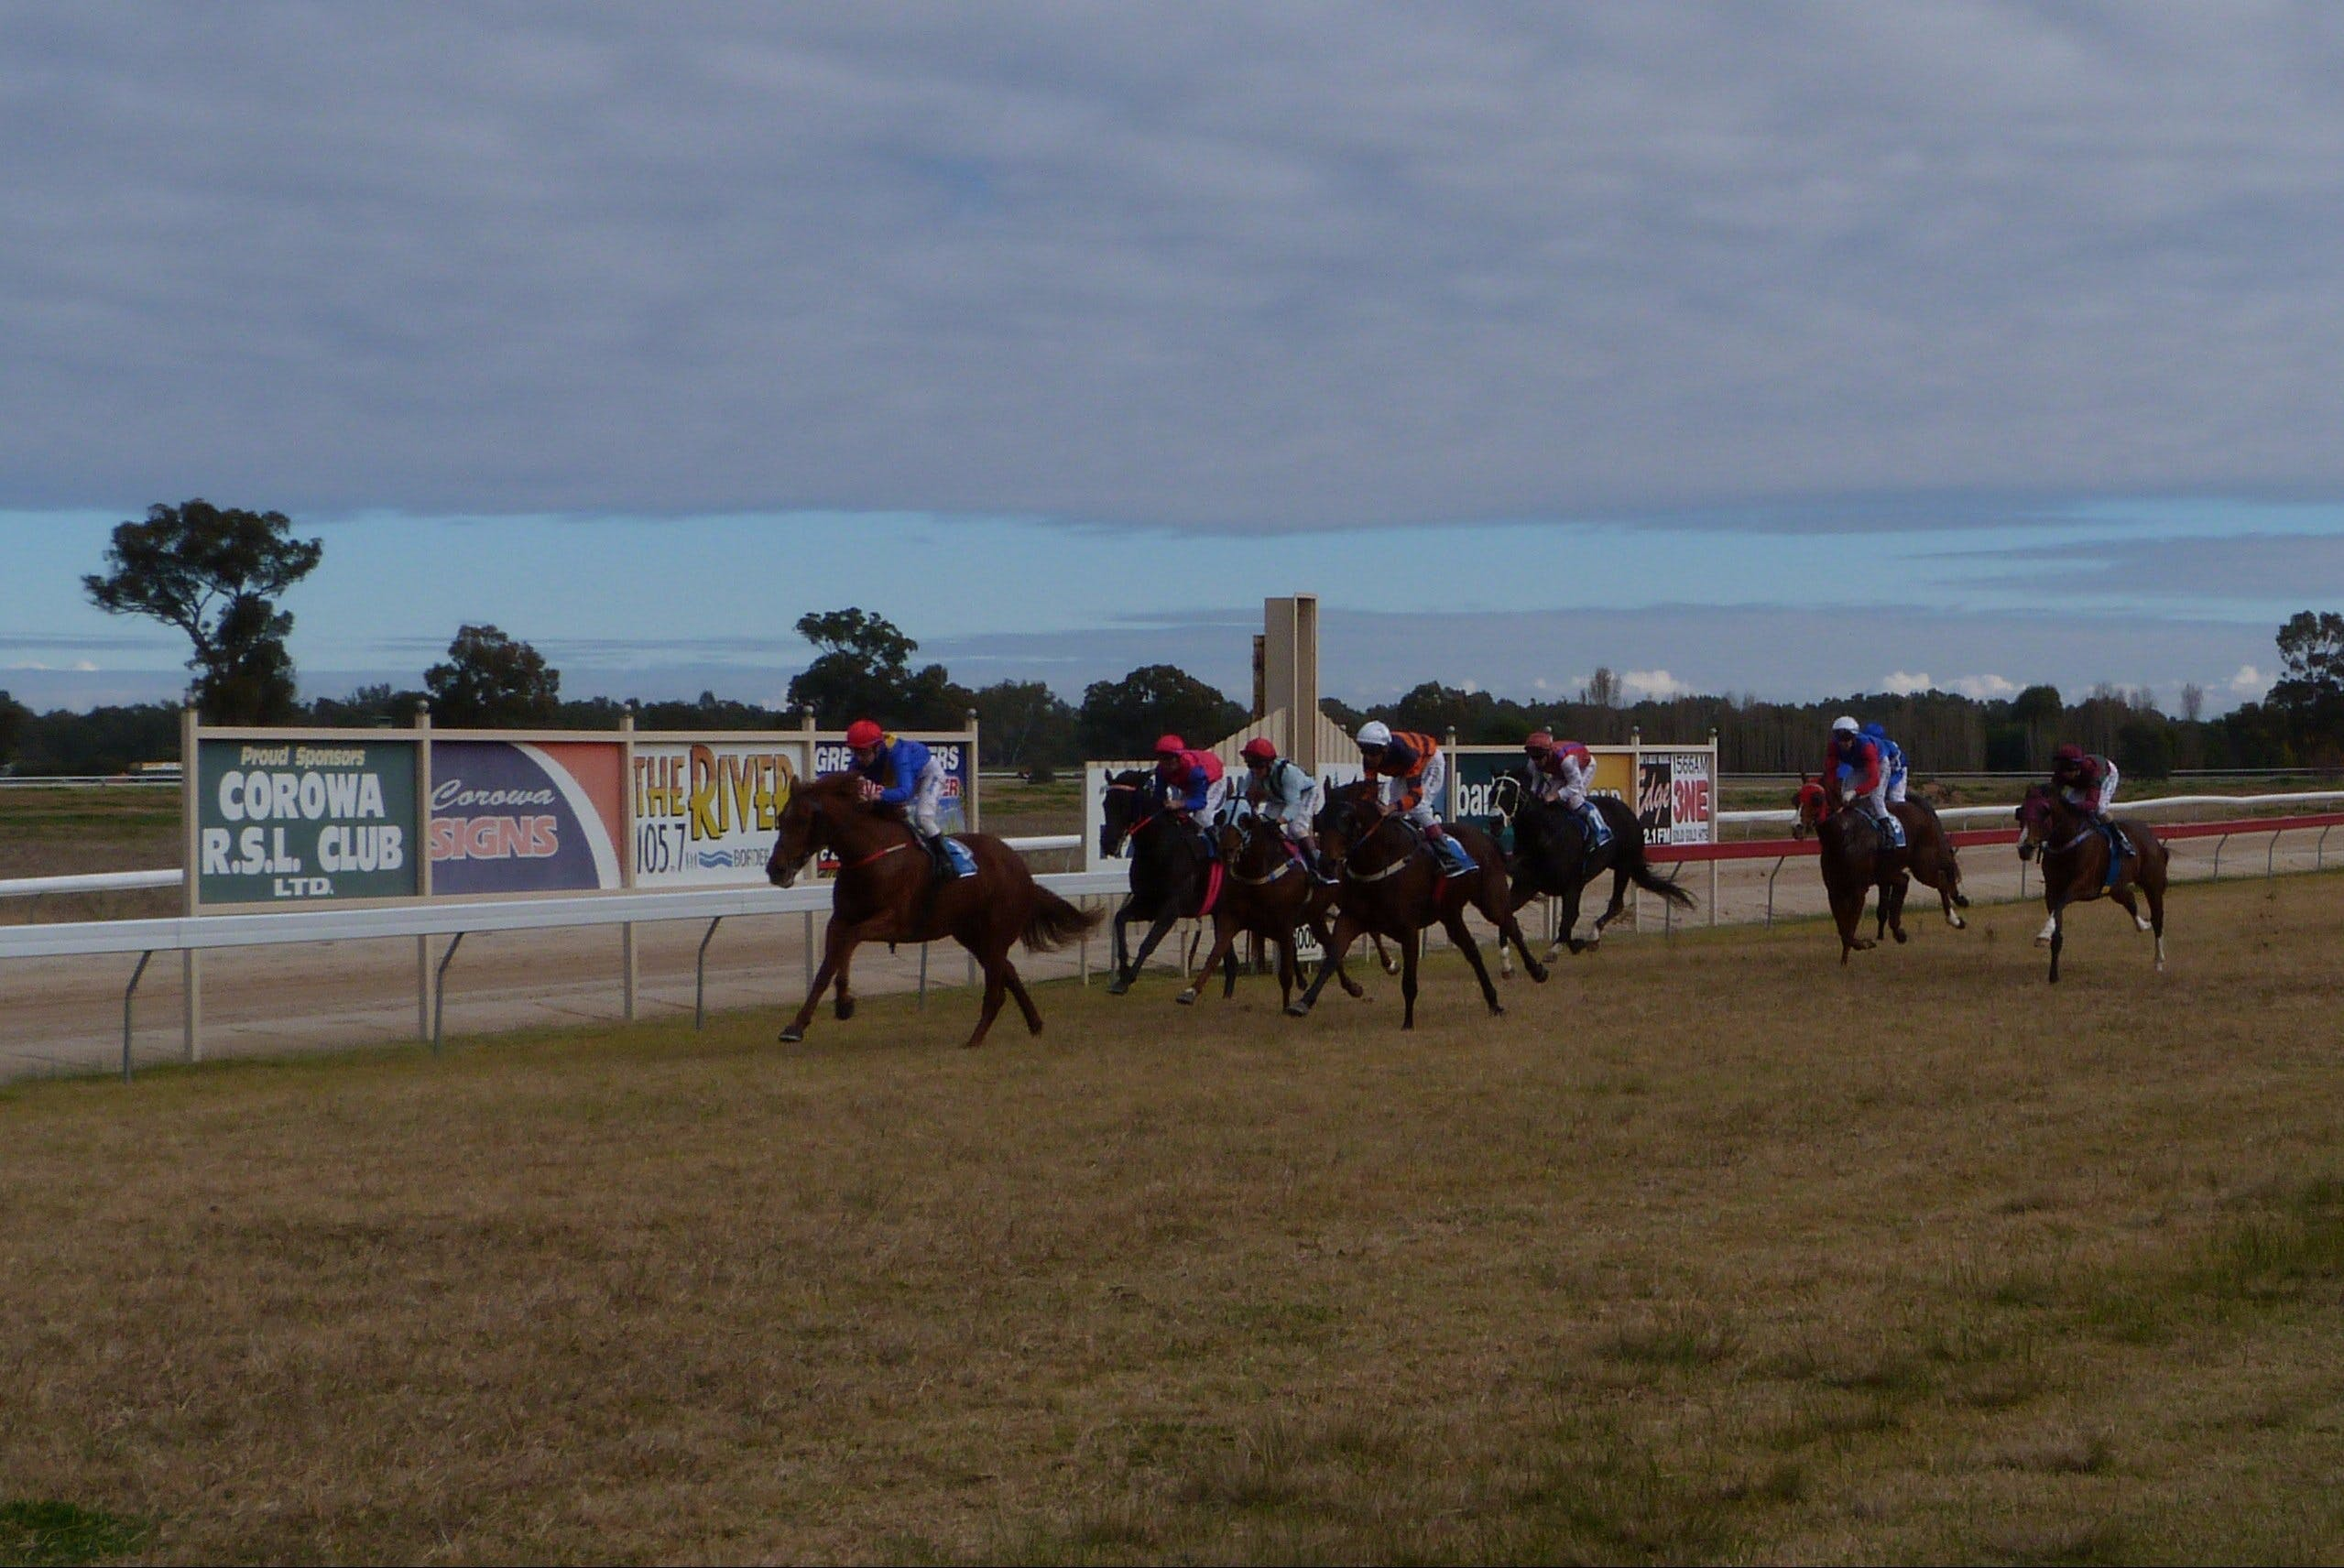 Corowa Horseraces - QLD Tourism